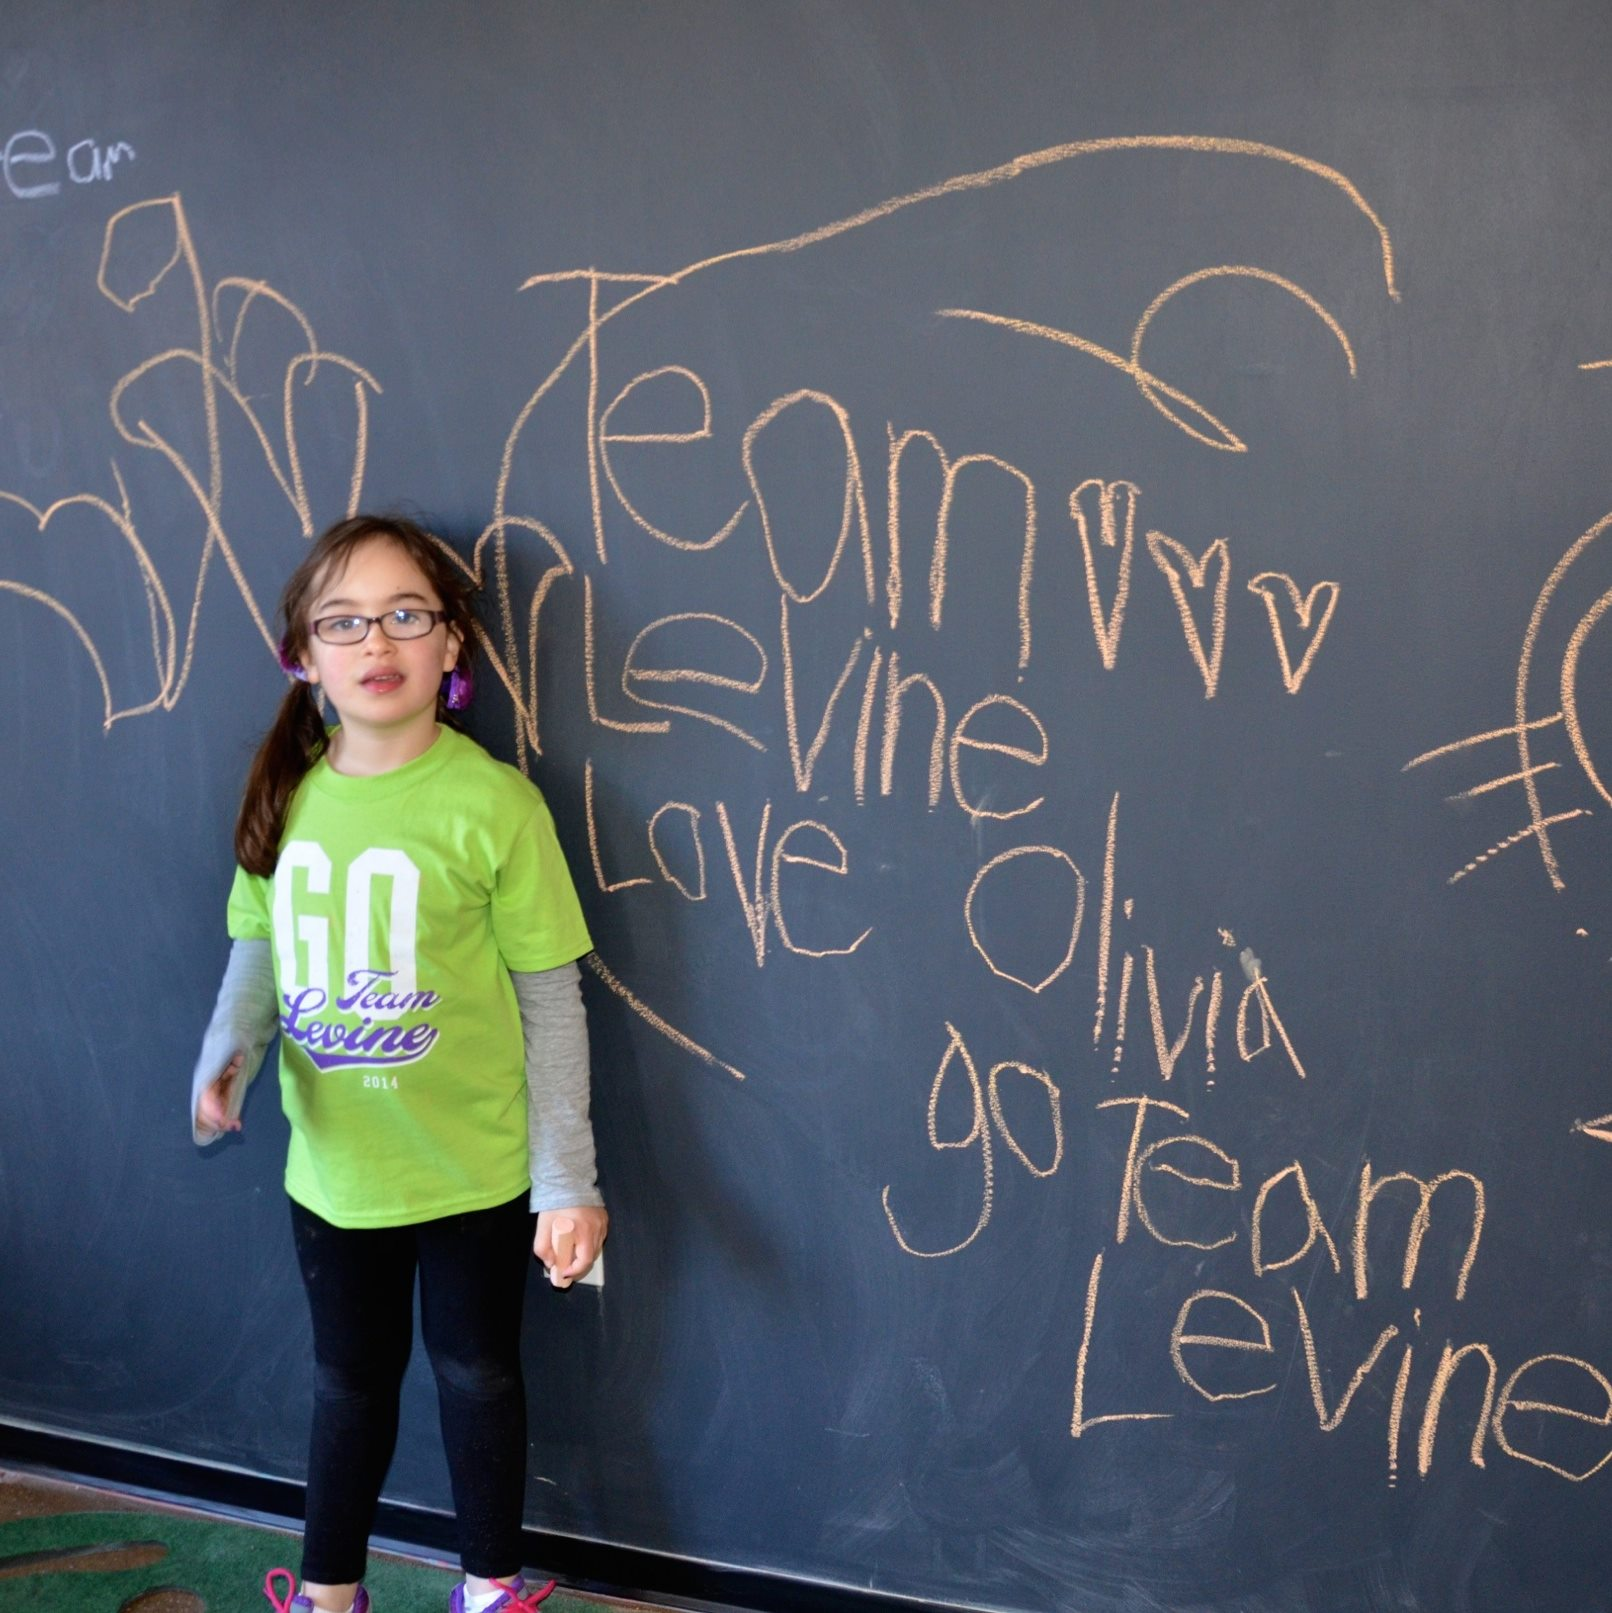 olivia-levine-decorating-the-walls-at-our-post-walk-party-at-ai_16916459881_o.jpg